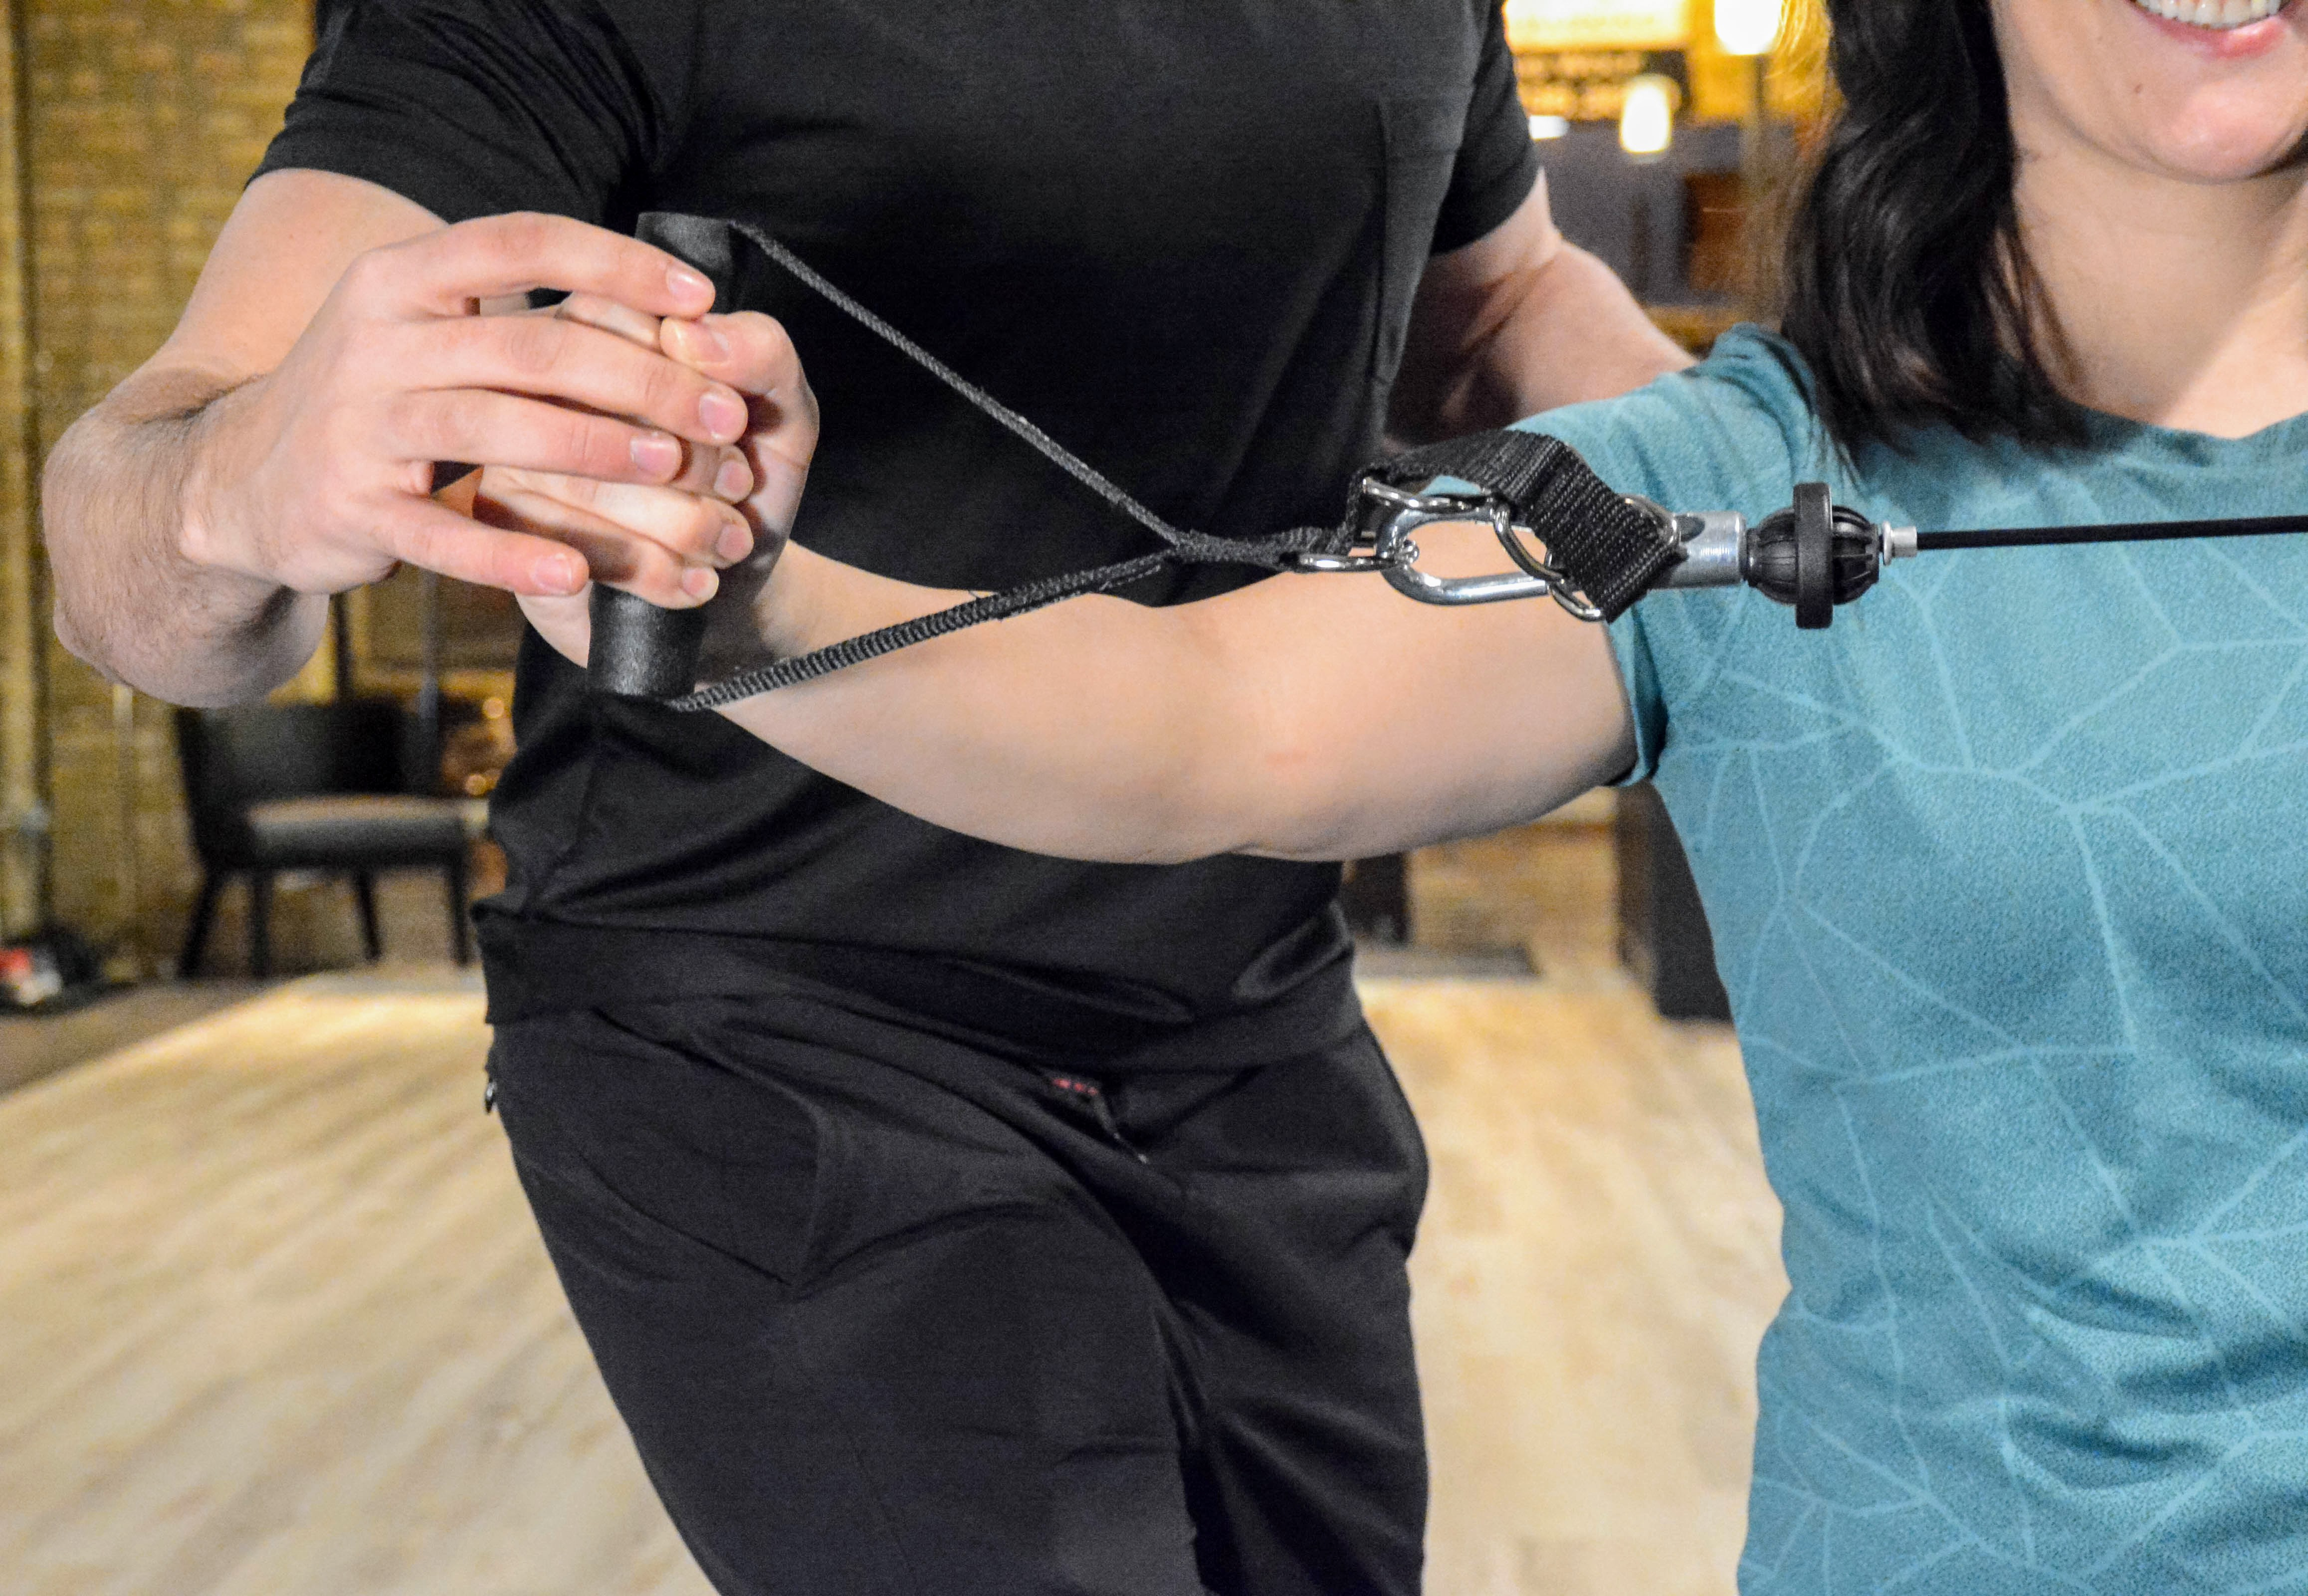 Woman doing an arm extension with cable during a personal training session